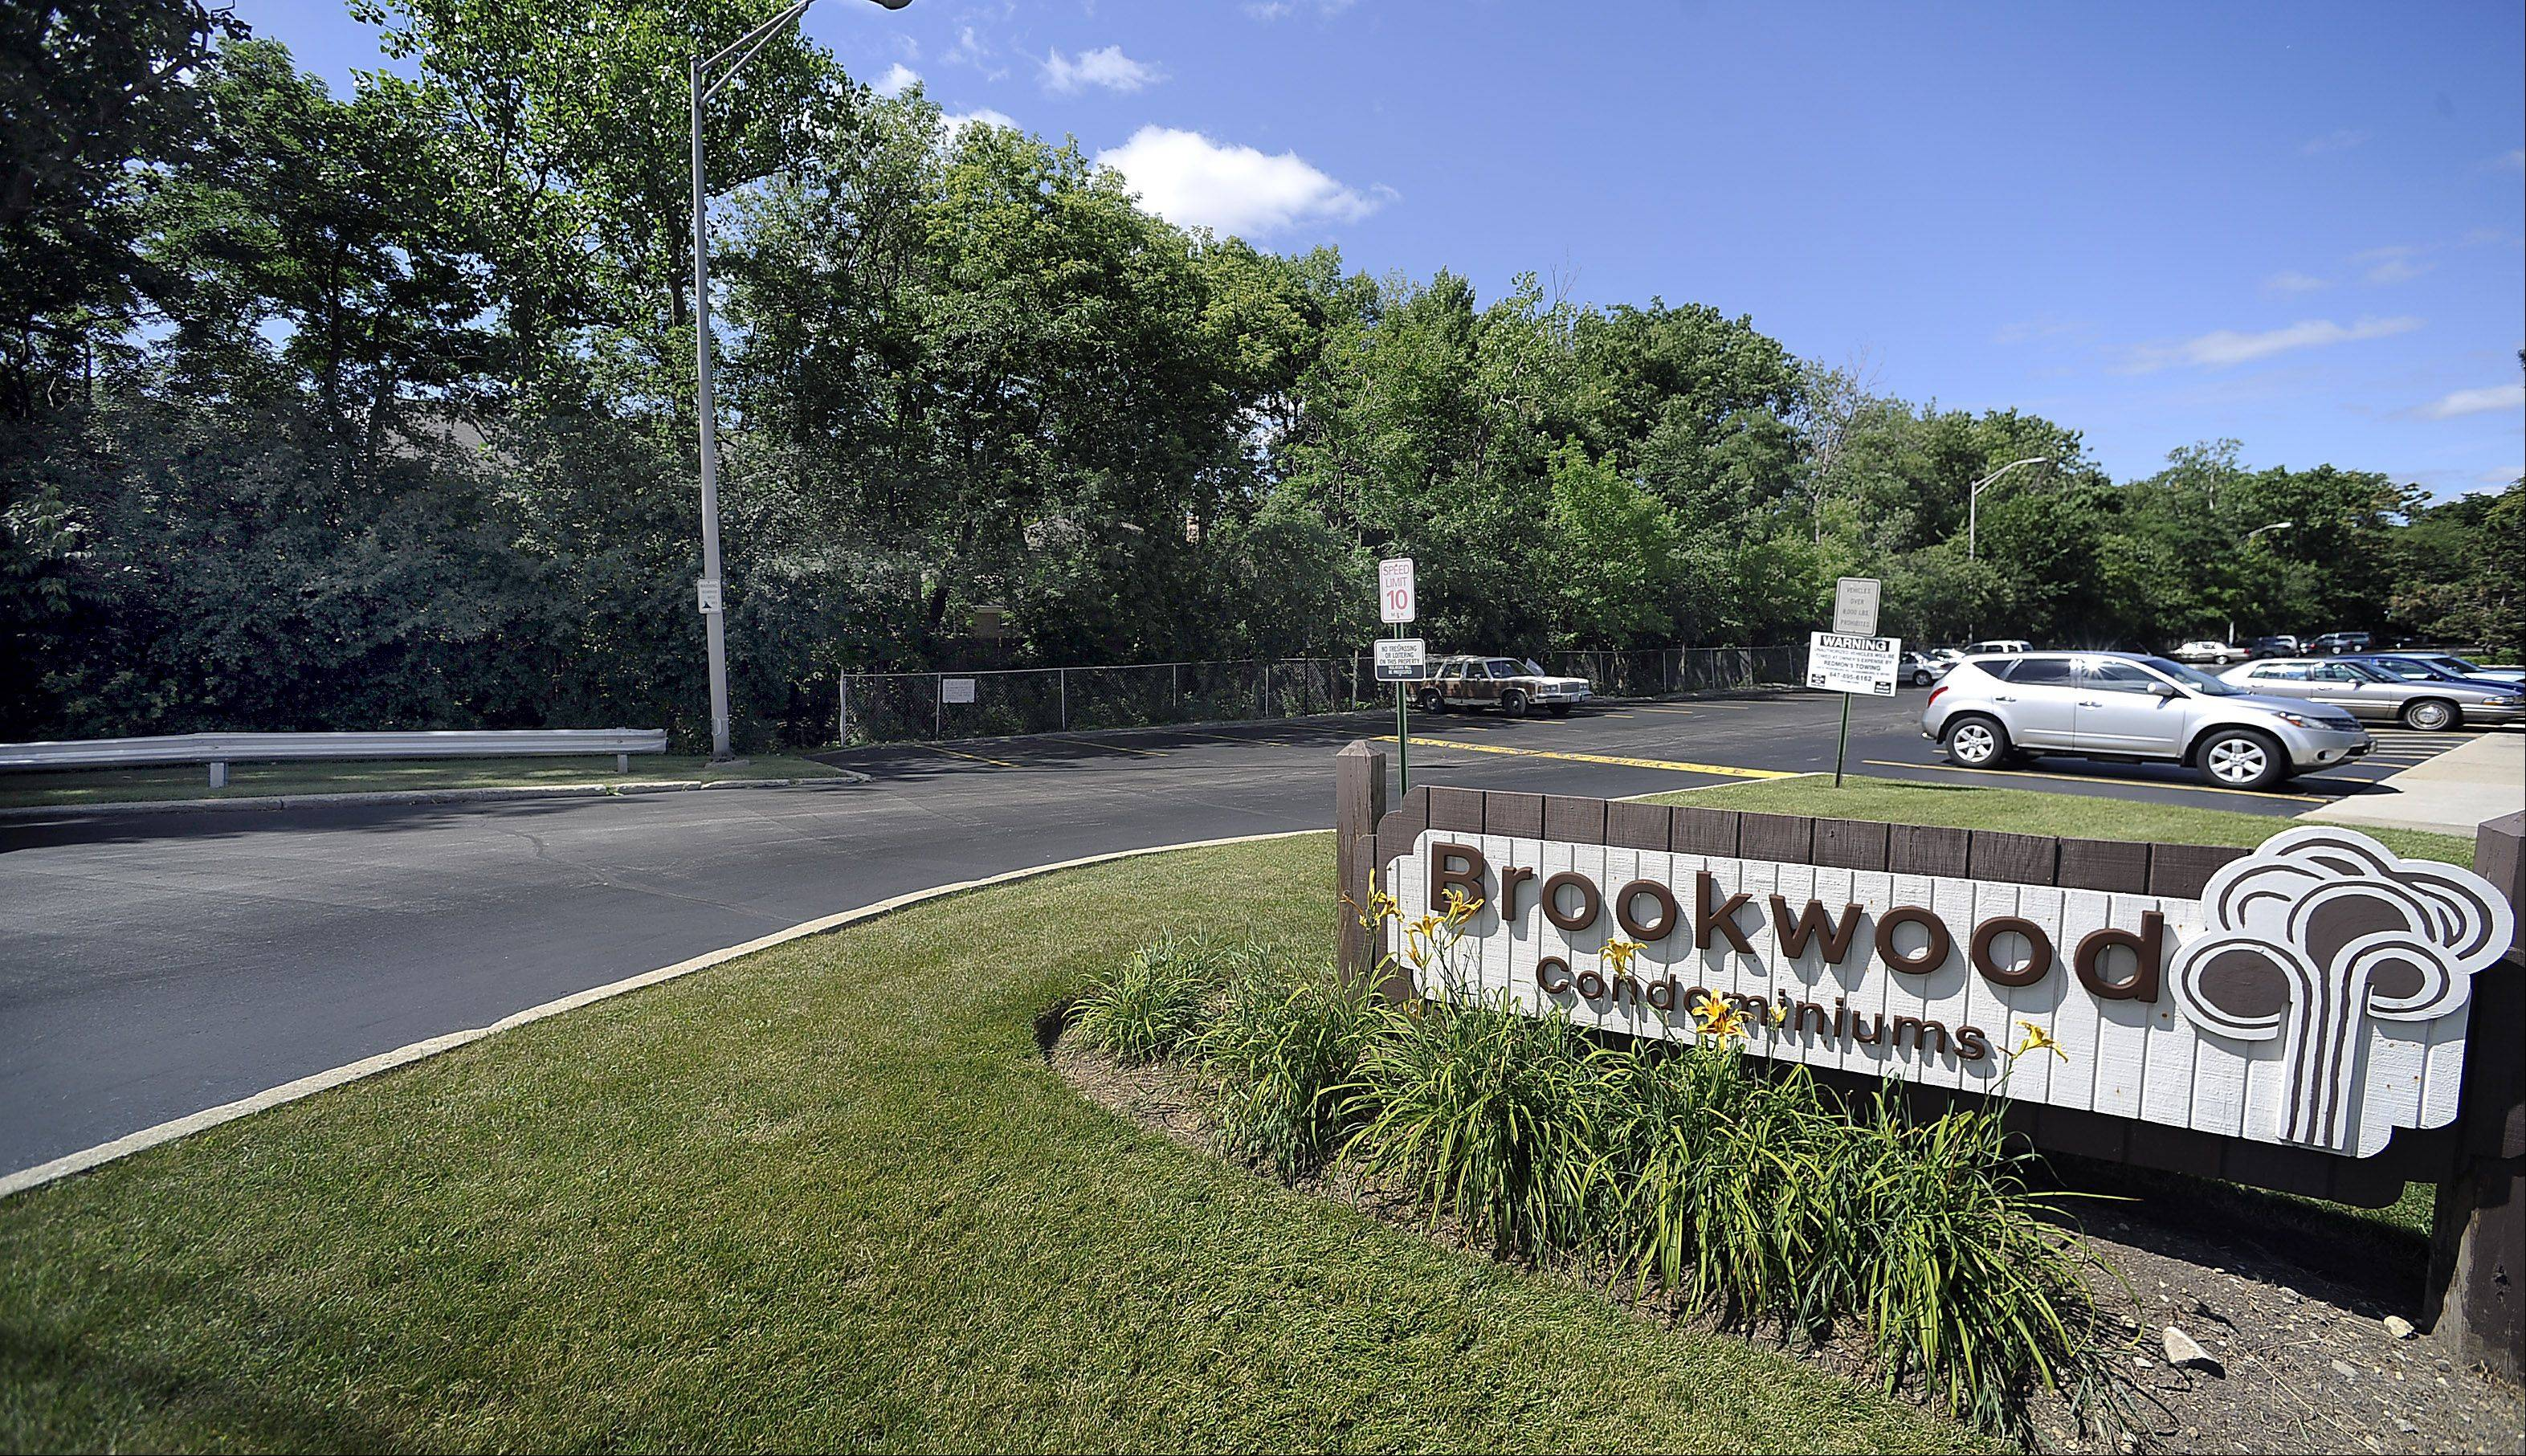 Rolling Meadows will condemn the land behind the Brookwood Condominiums if the community's residents don't agree on a flood prevention project. The land in question is located along the tree line hiding a creek bed.